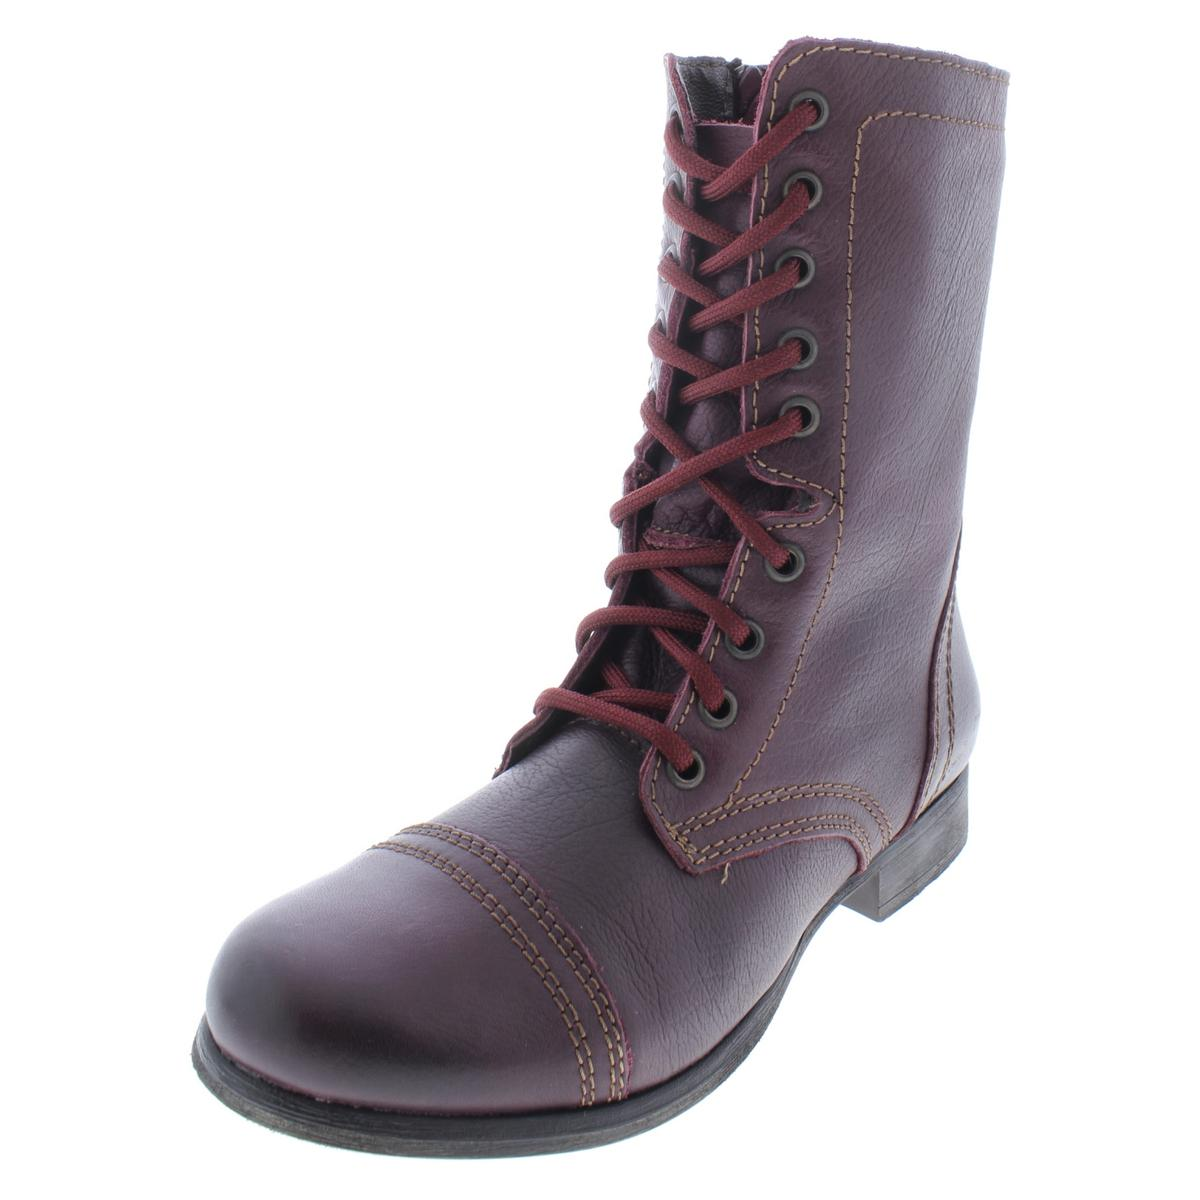 a8e93f37d98 Details about Steve Madden Womens Troopa Red Ankle Combat Boots Shoes 7  Medium (B